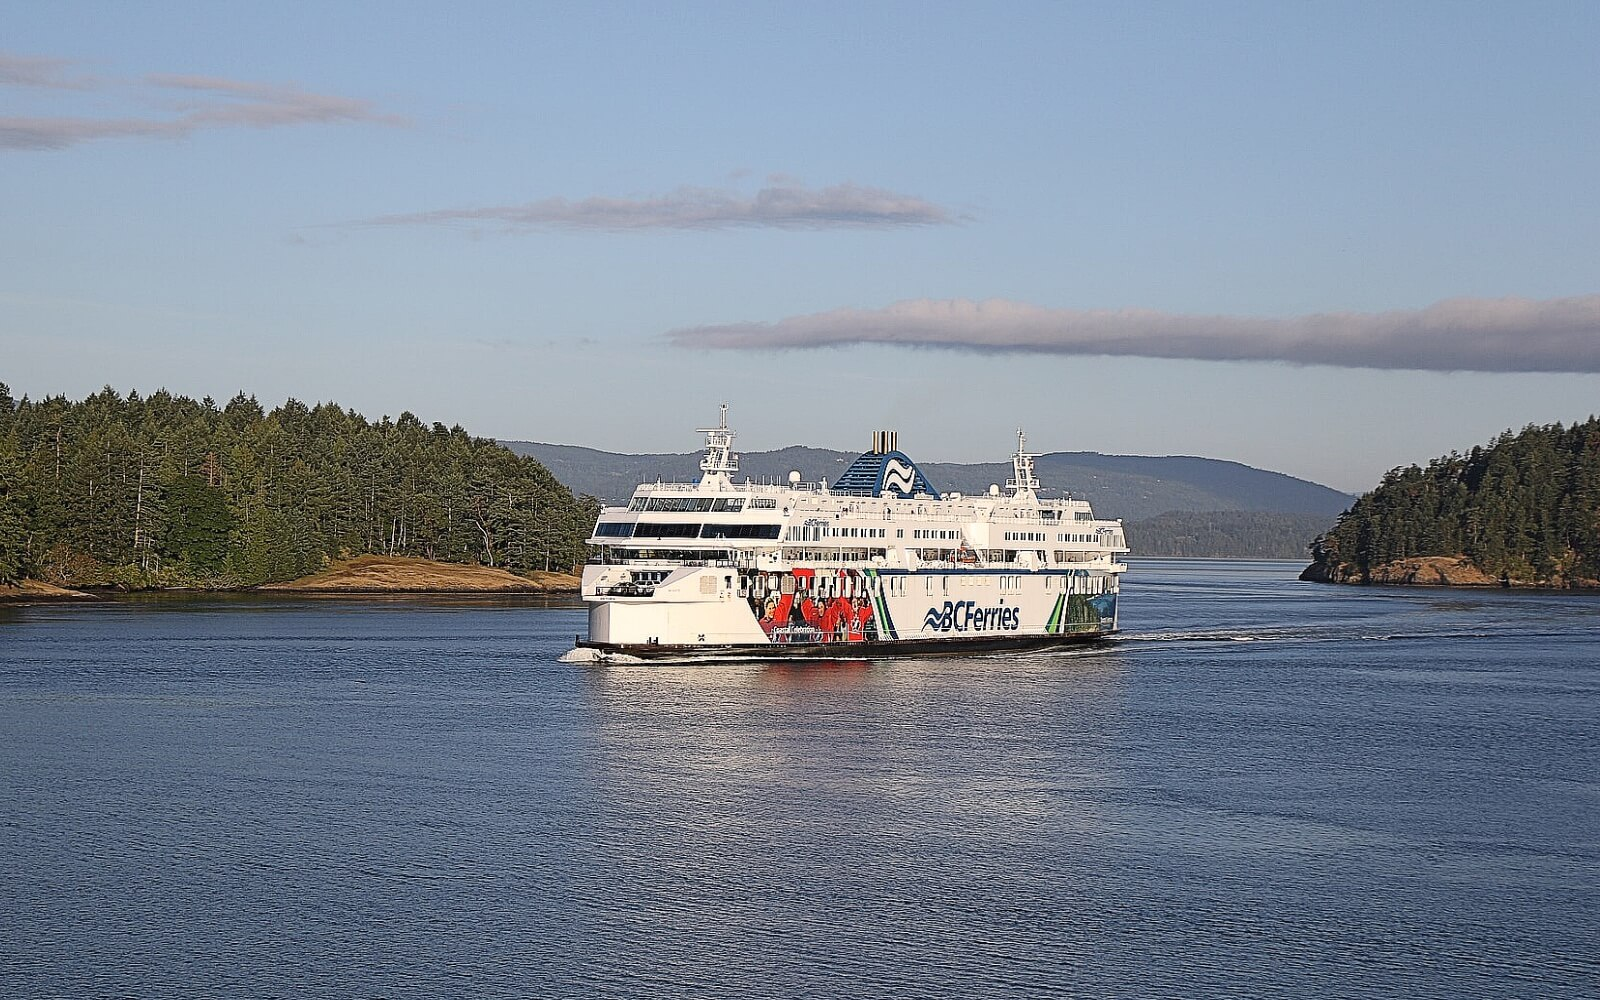 A BC Ferry ships comes into port